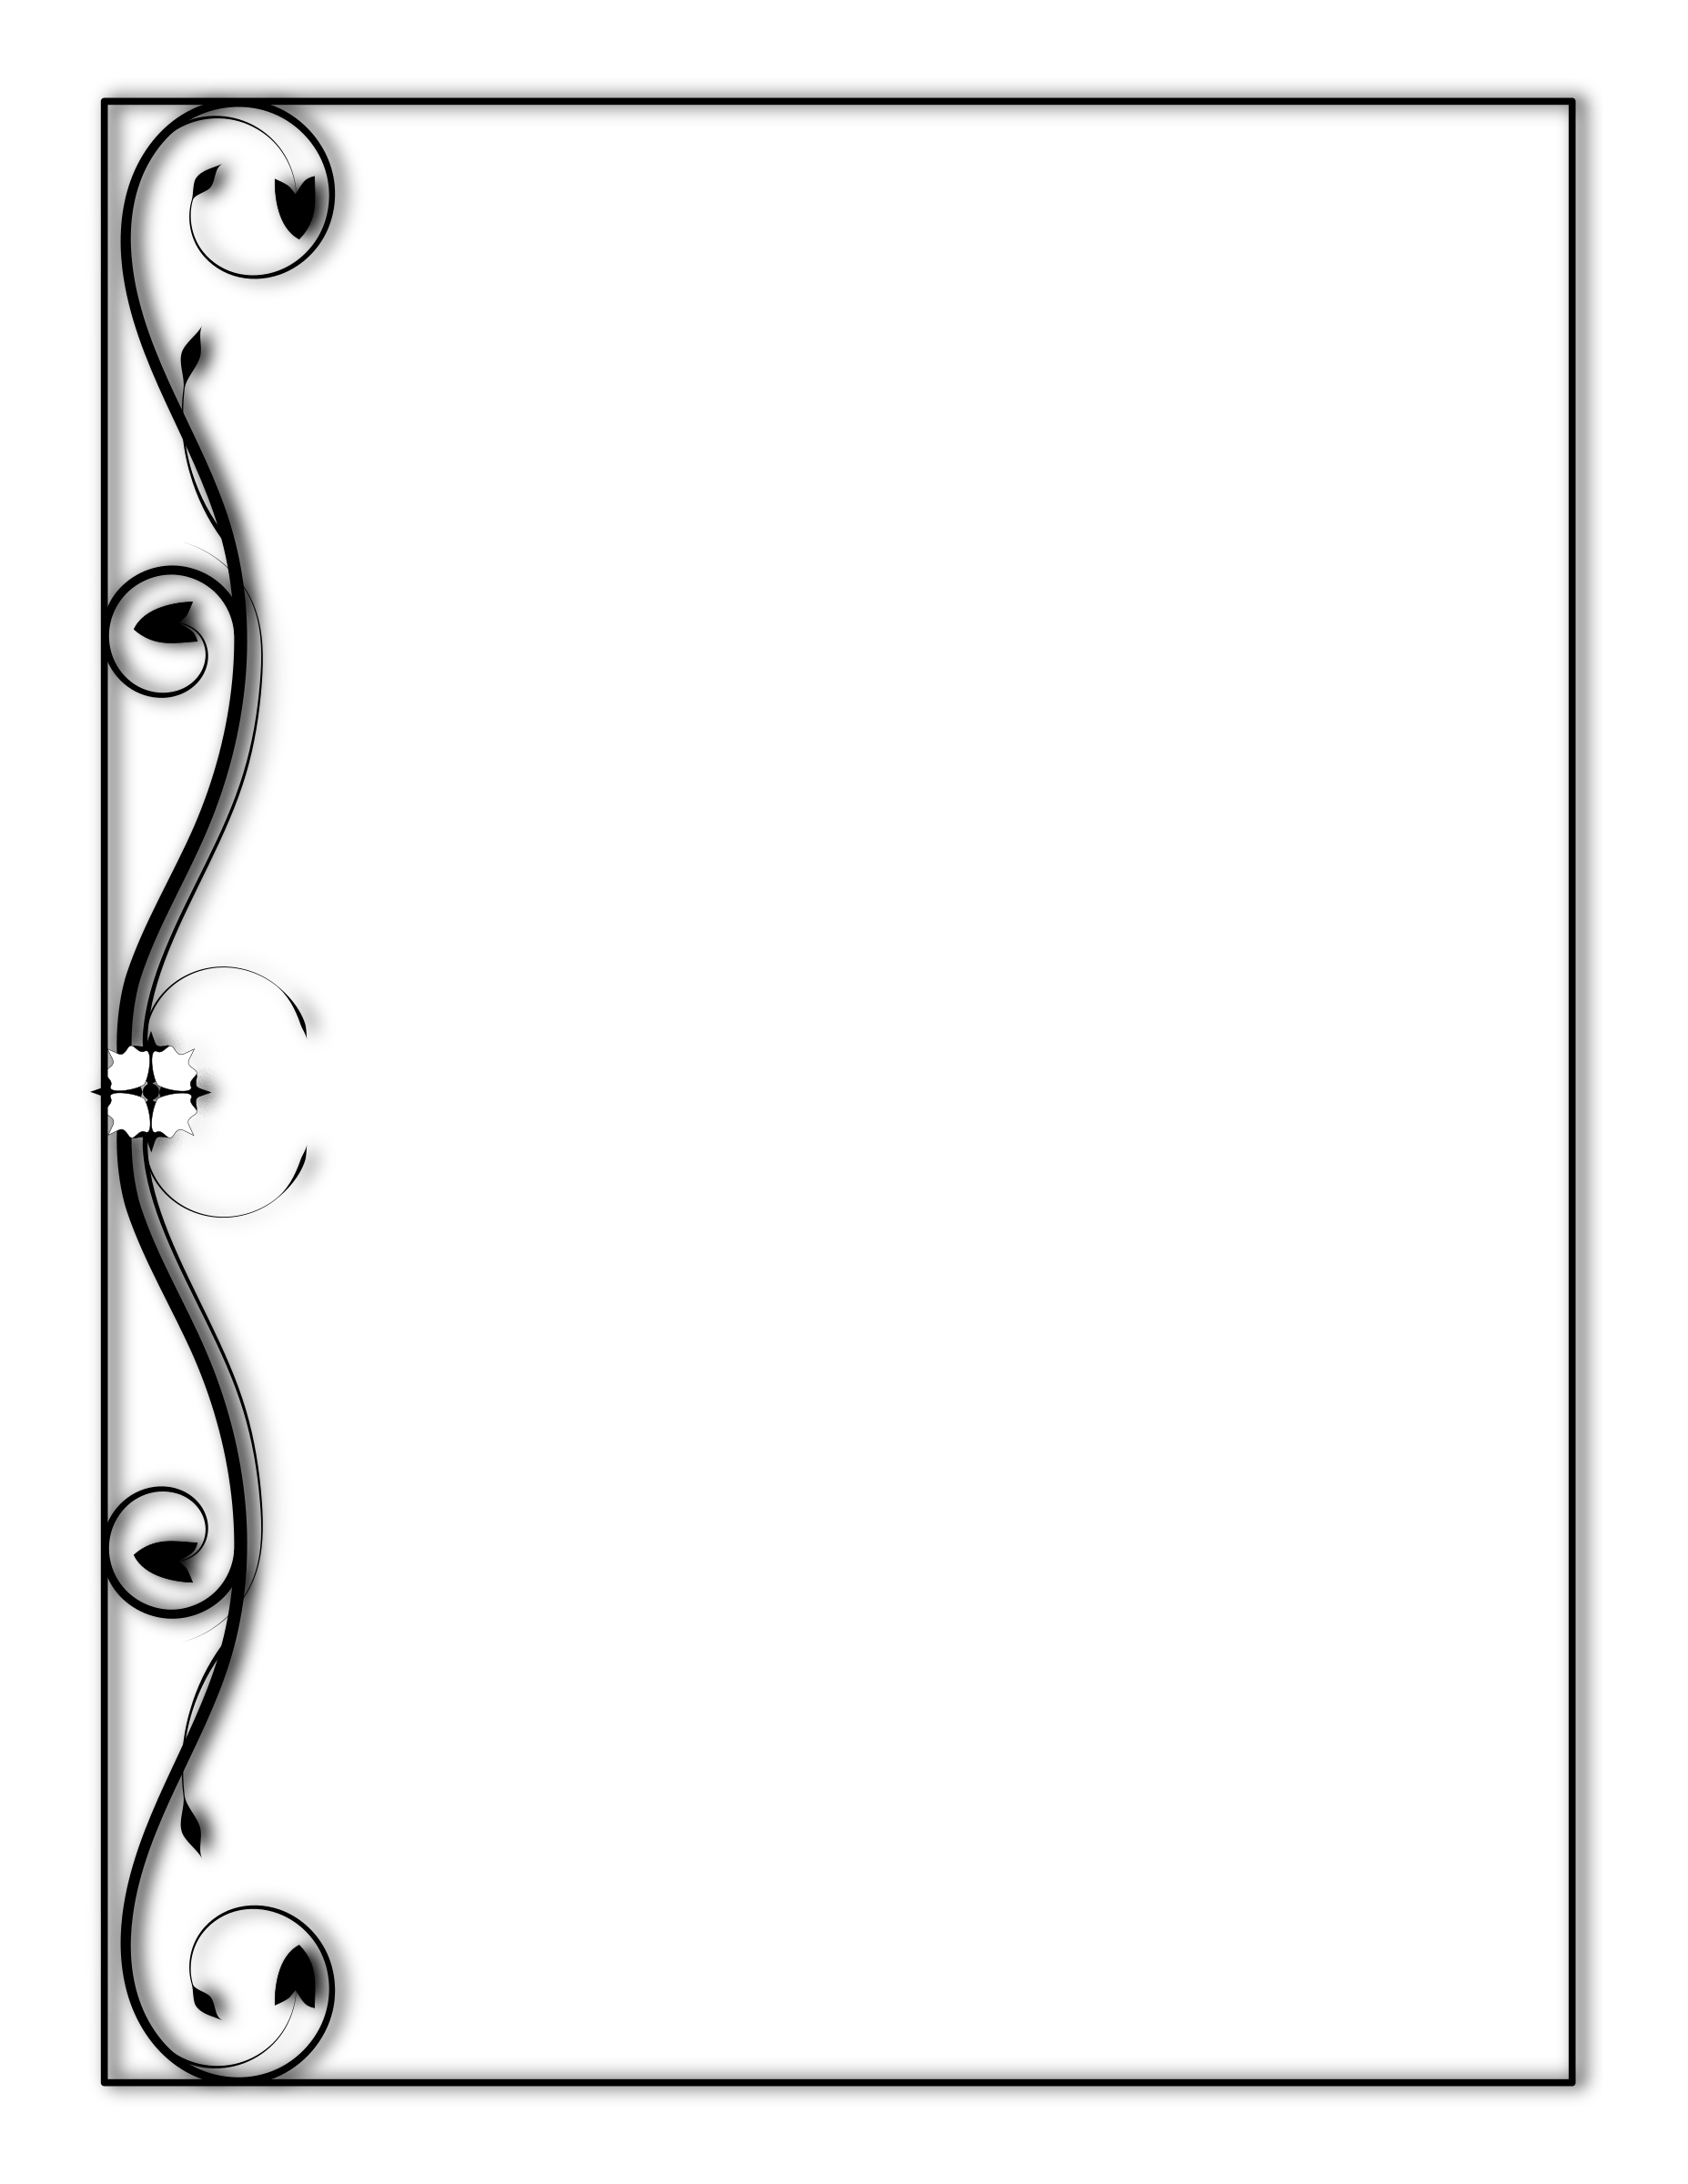 Page border png, Page border png Transparent FREE for